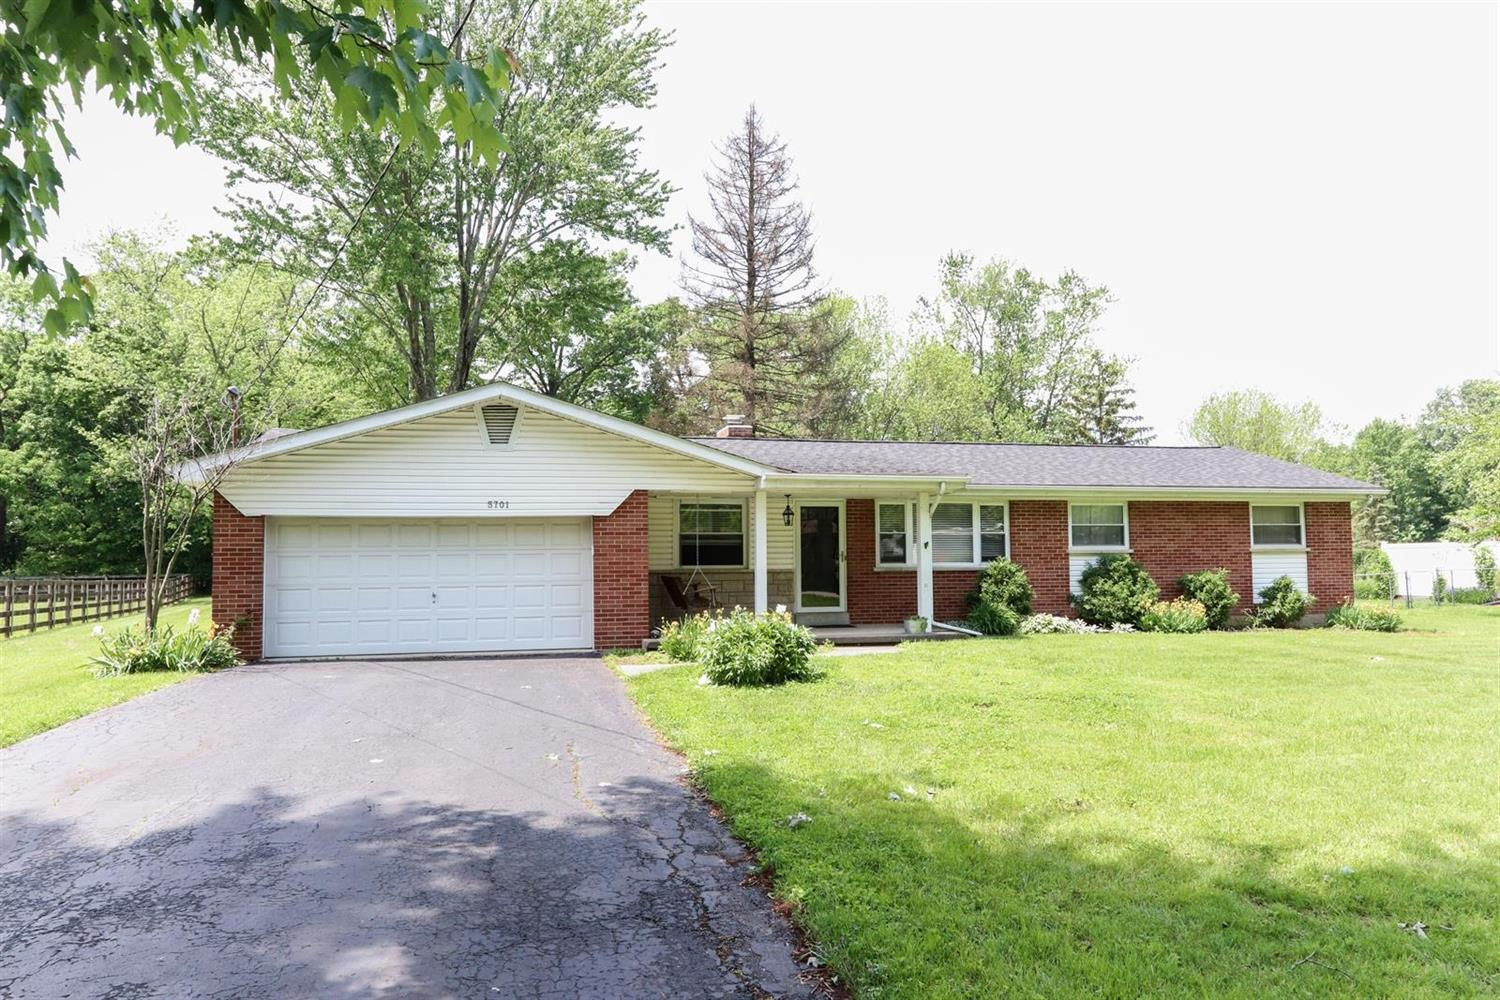 5701 E Day Cir Miami Twp. (East), OH